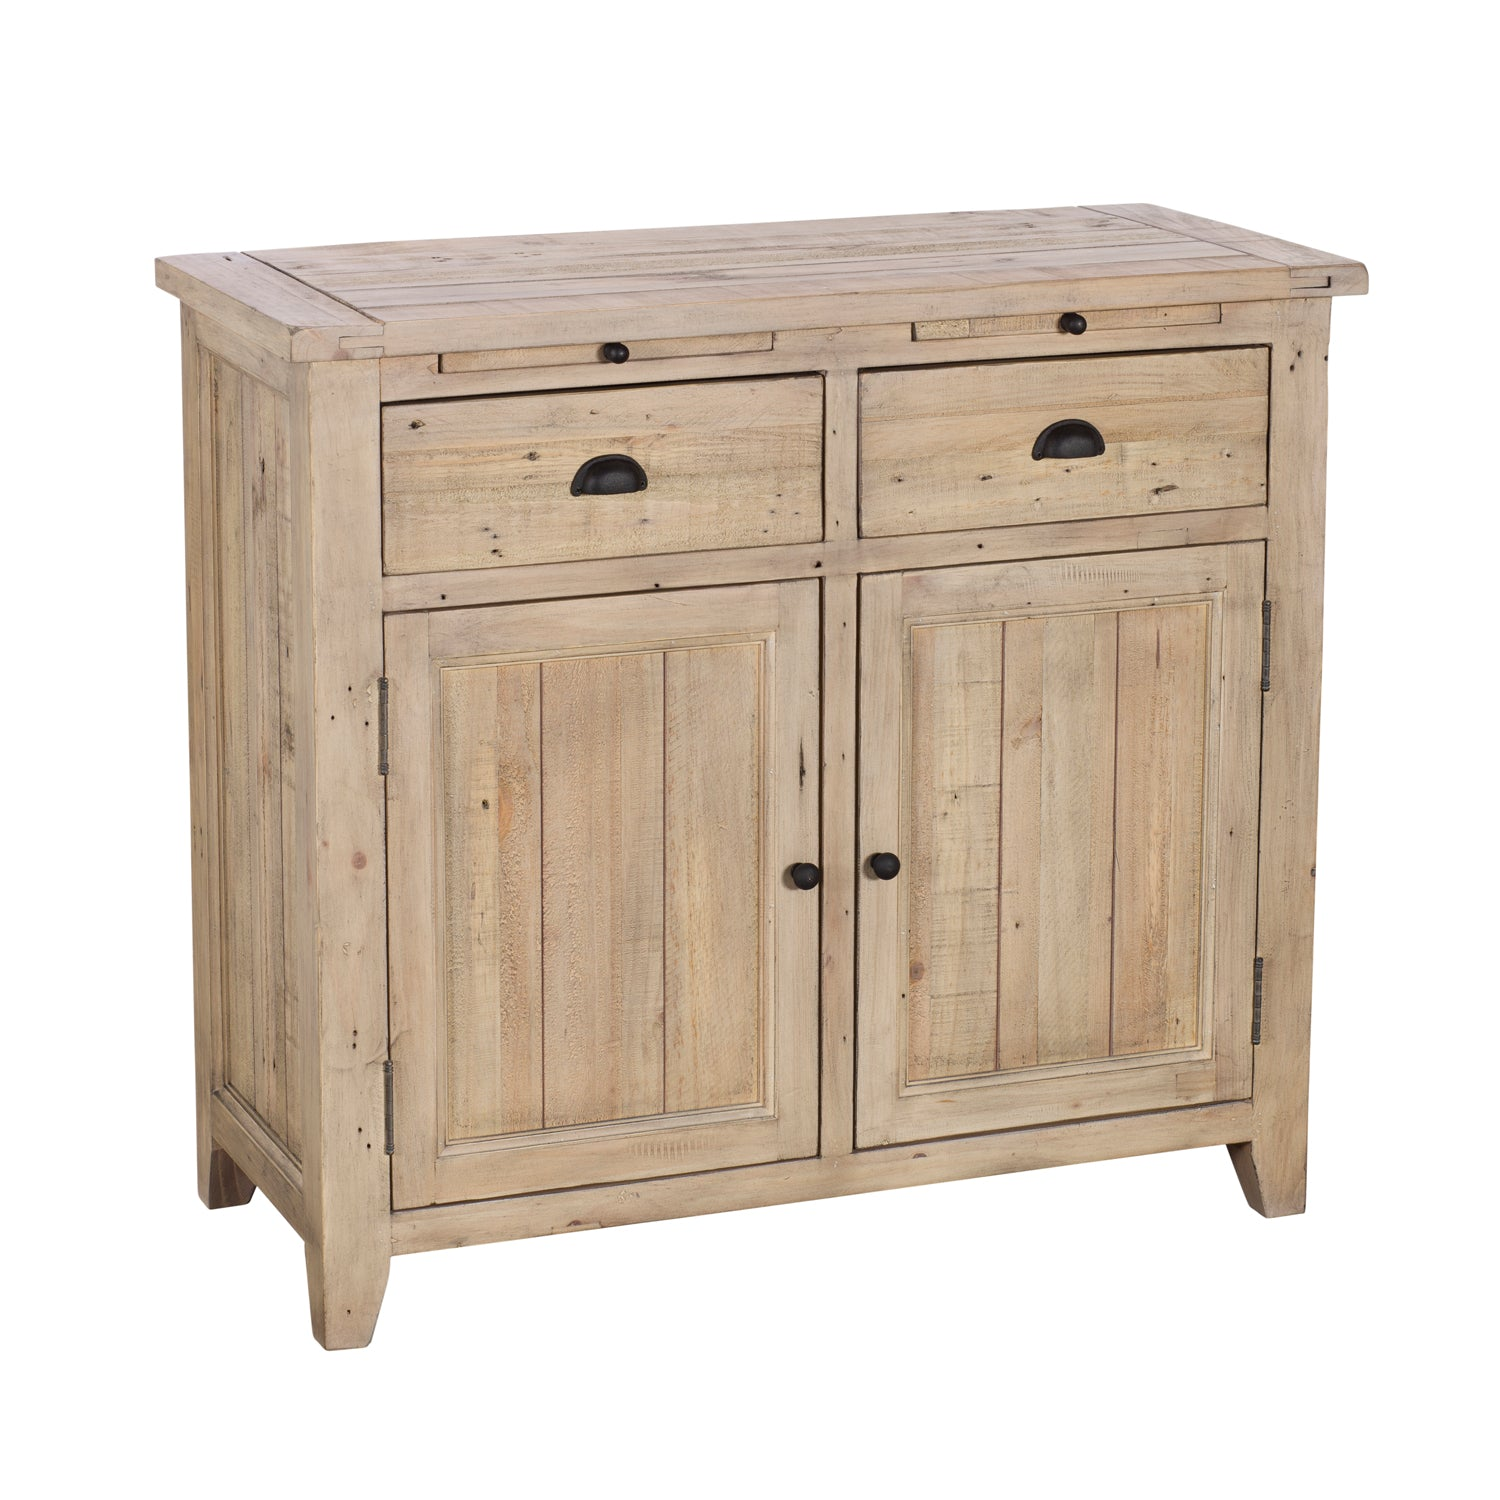 Sands End Reclaimed Timber 2 Door Sideboard